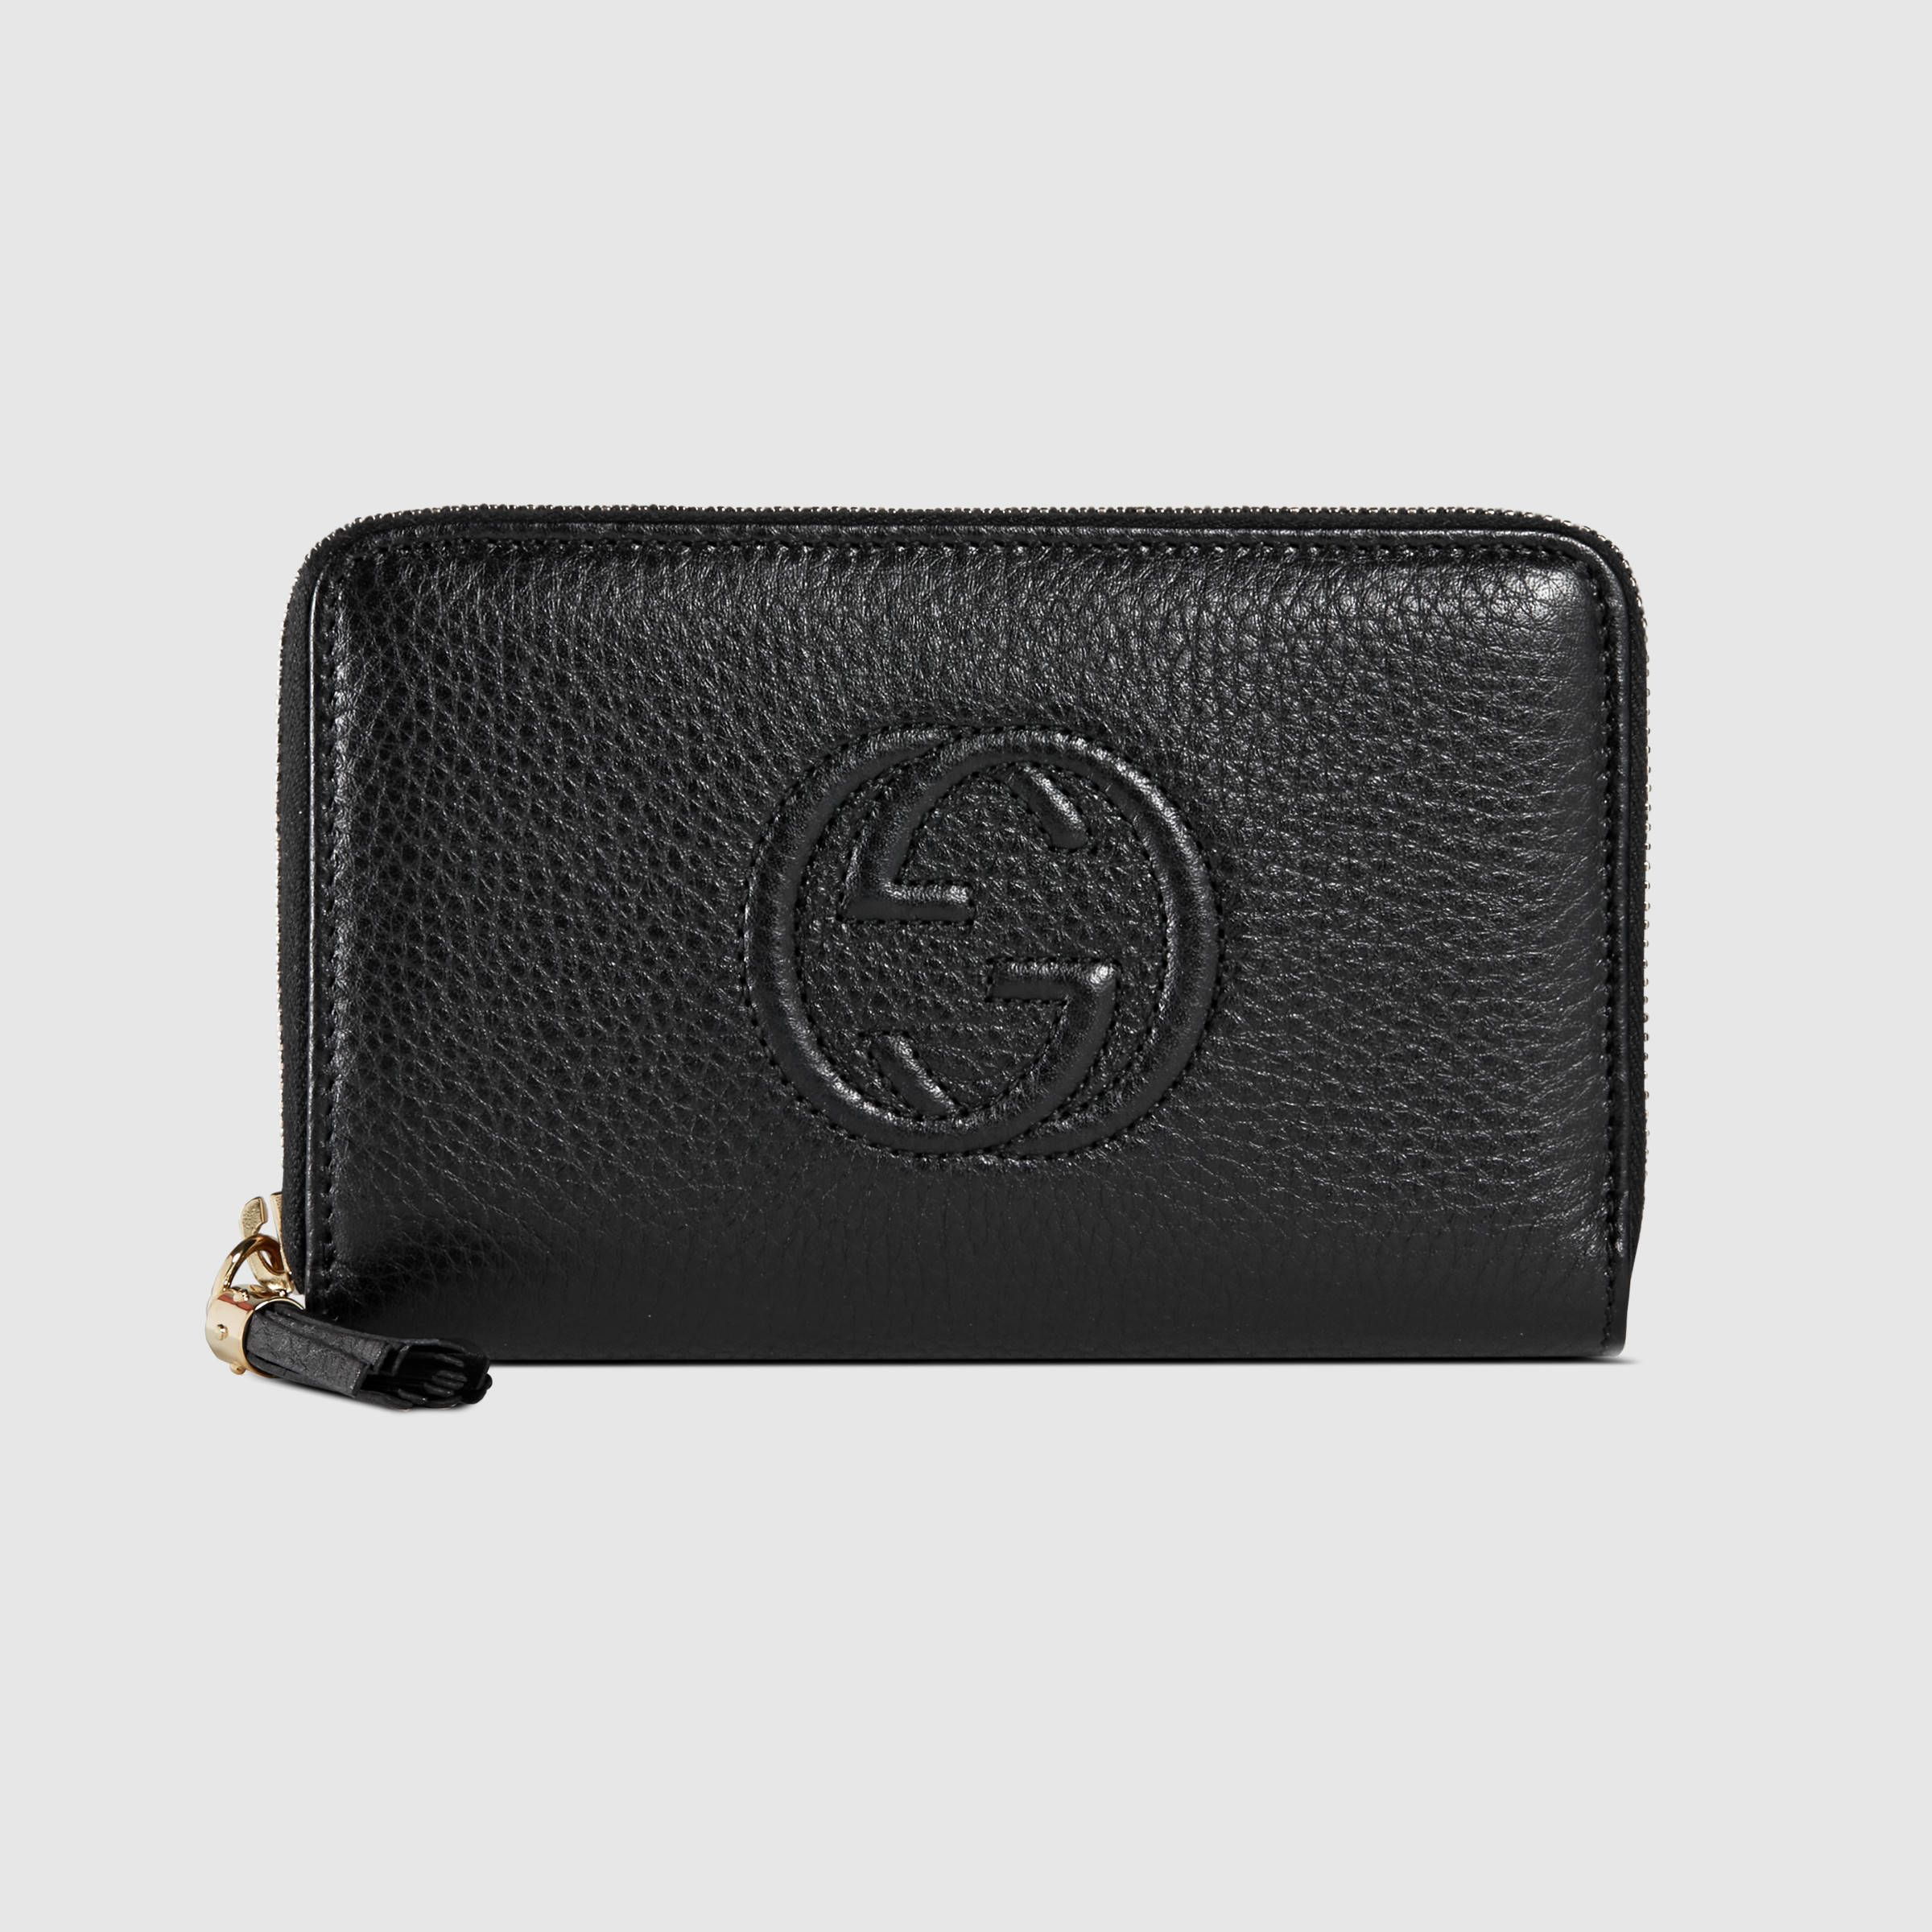 0a68b0f175a Gucci Women - Soho leather zip around wallet - 351486A7M0G1000 ...